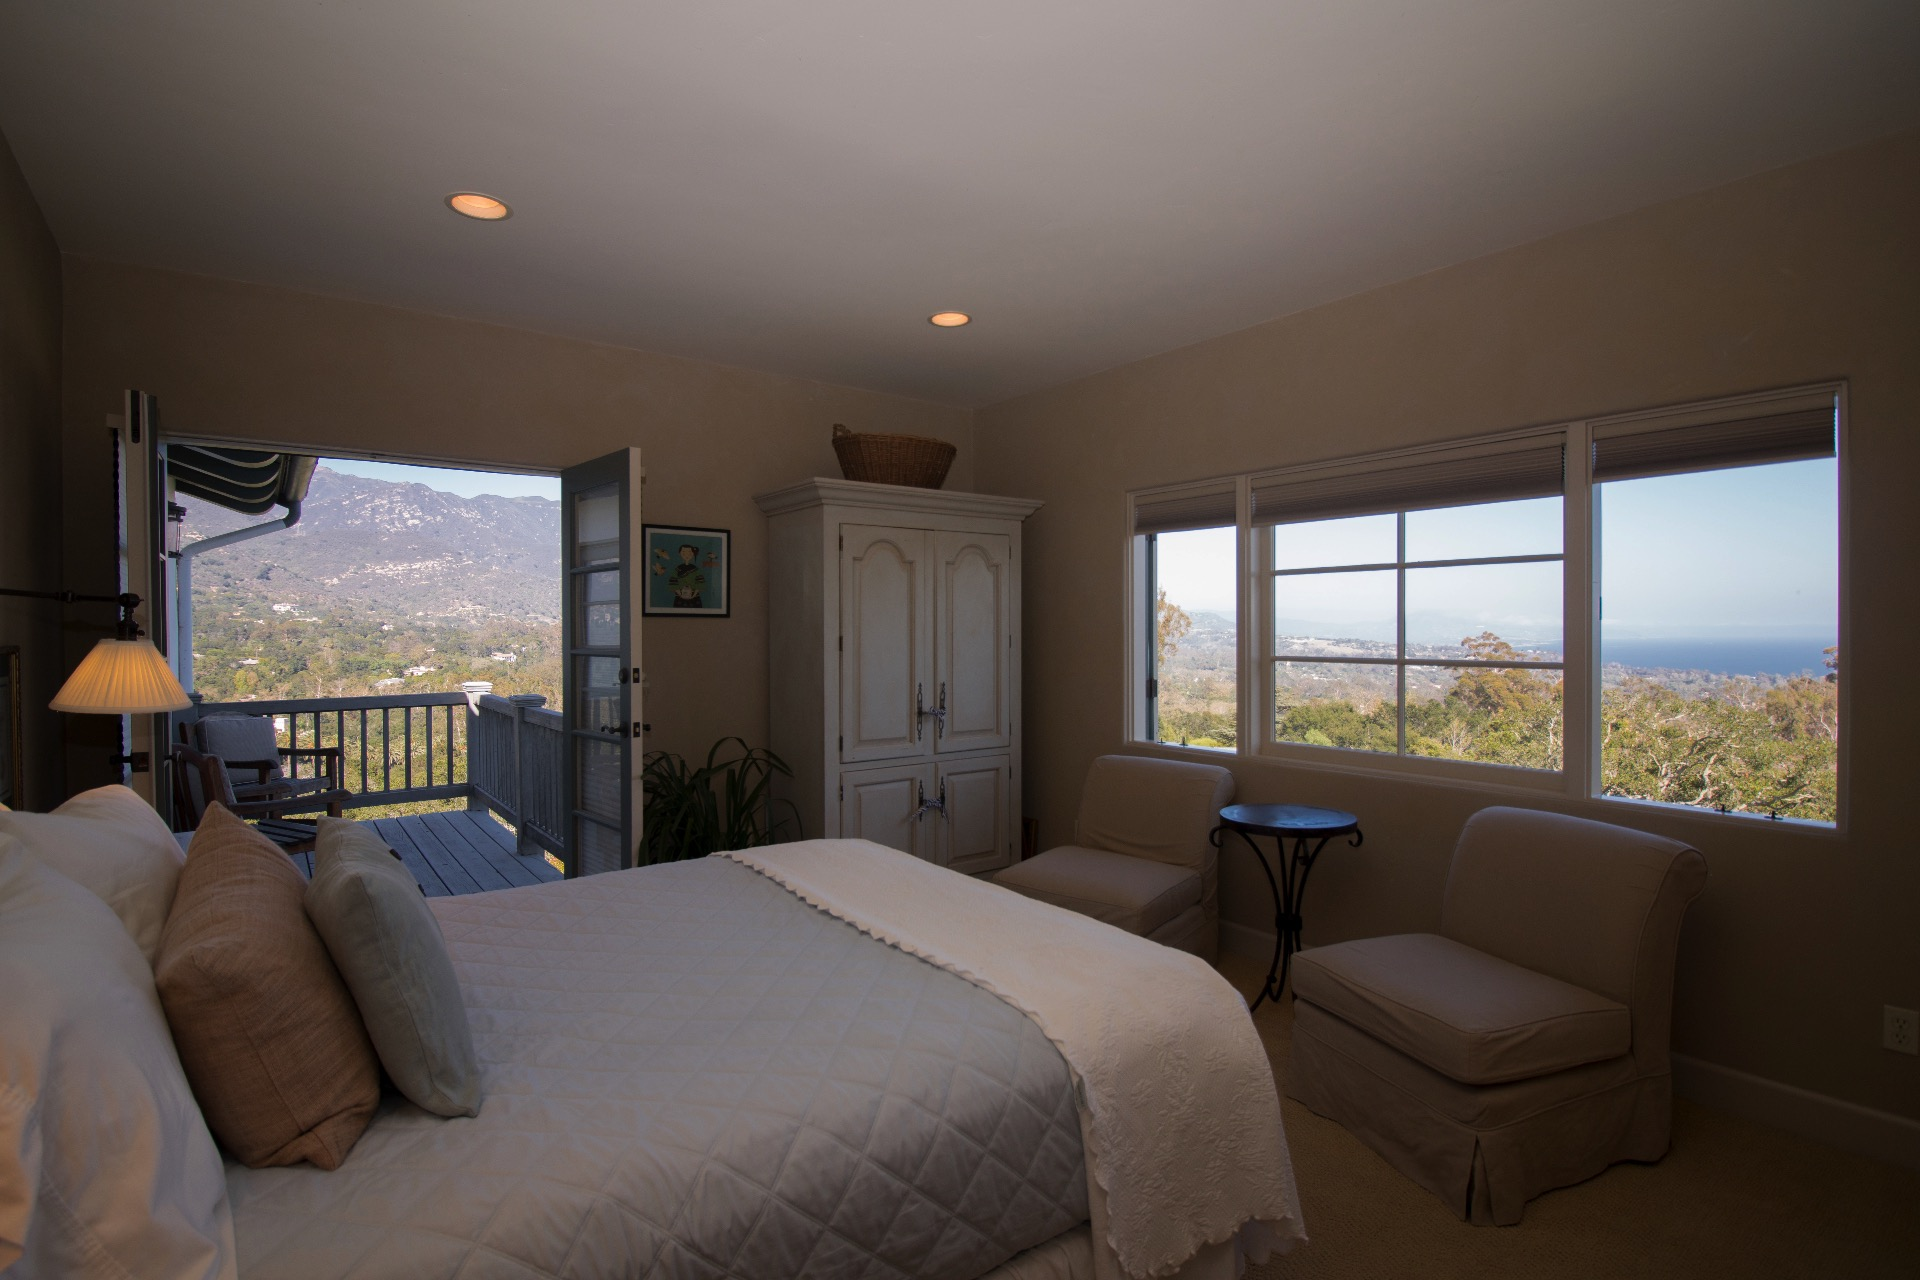 Guest bedroom upstairs has mountain and ocean views